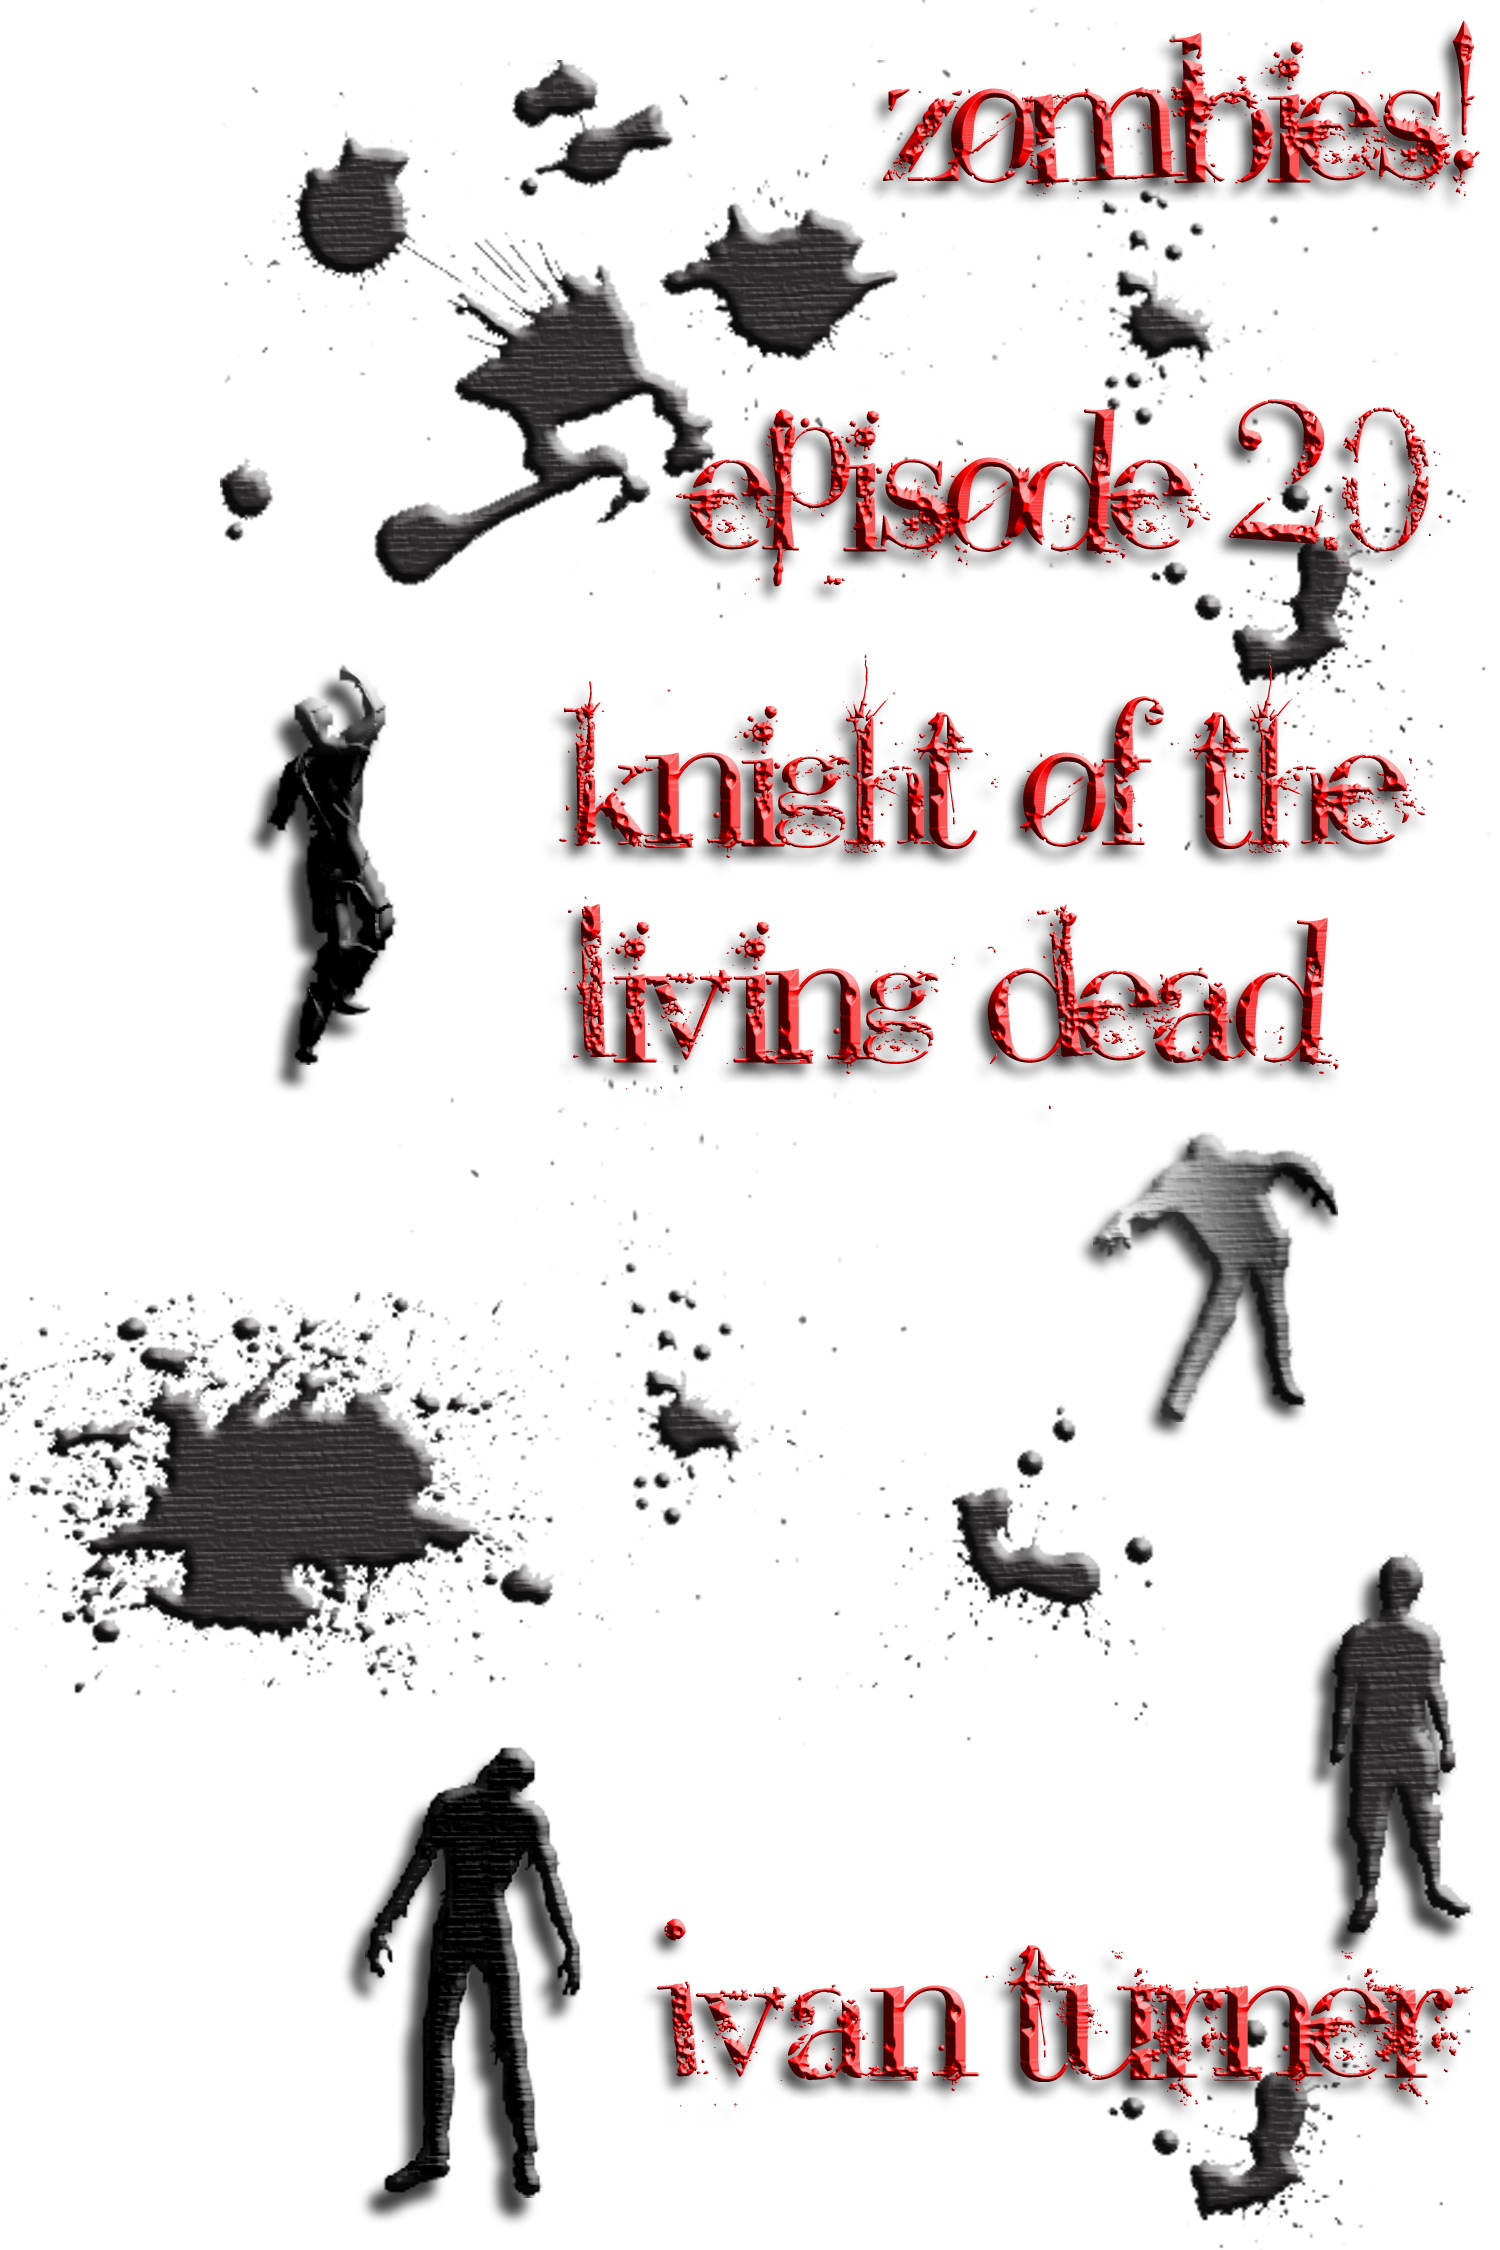 Zombies! Episode 2.0: Knight of the Living Dead